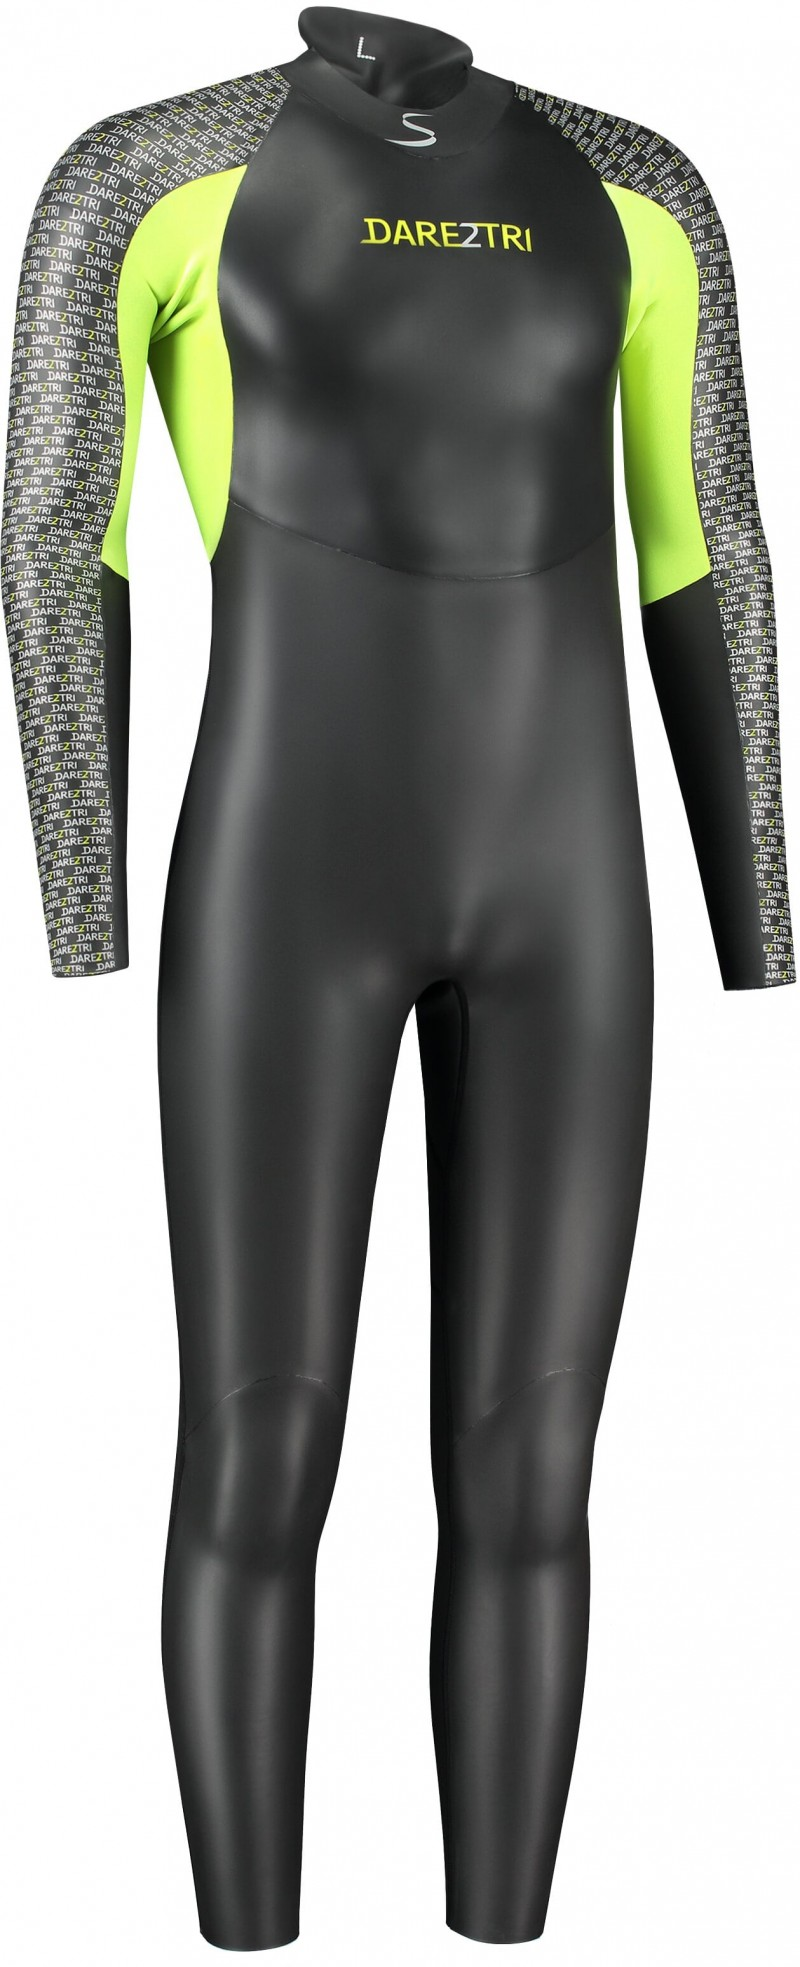 Dare2Tri - To Swim Wetsuit (Size Large Tall)